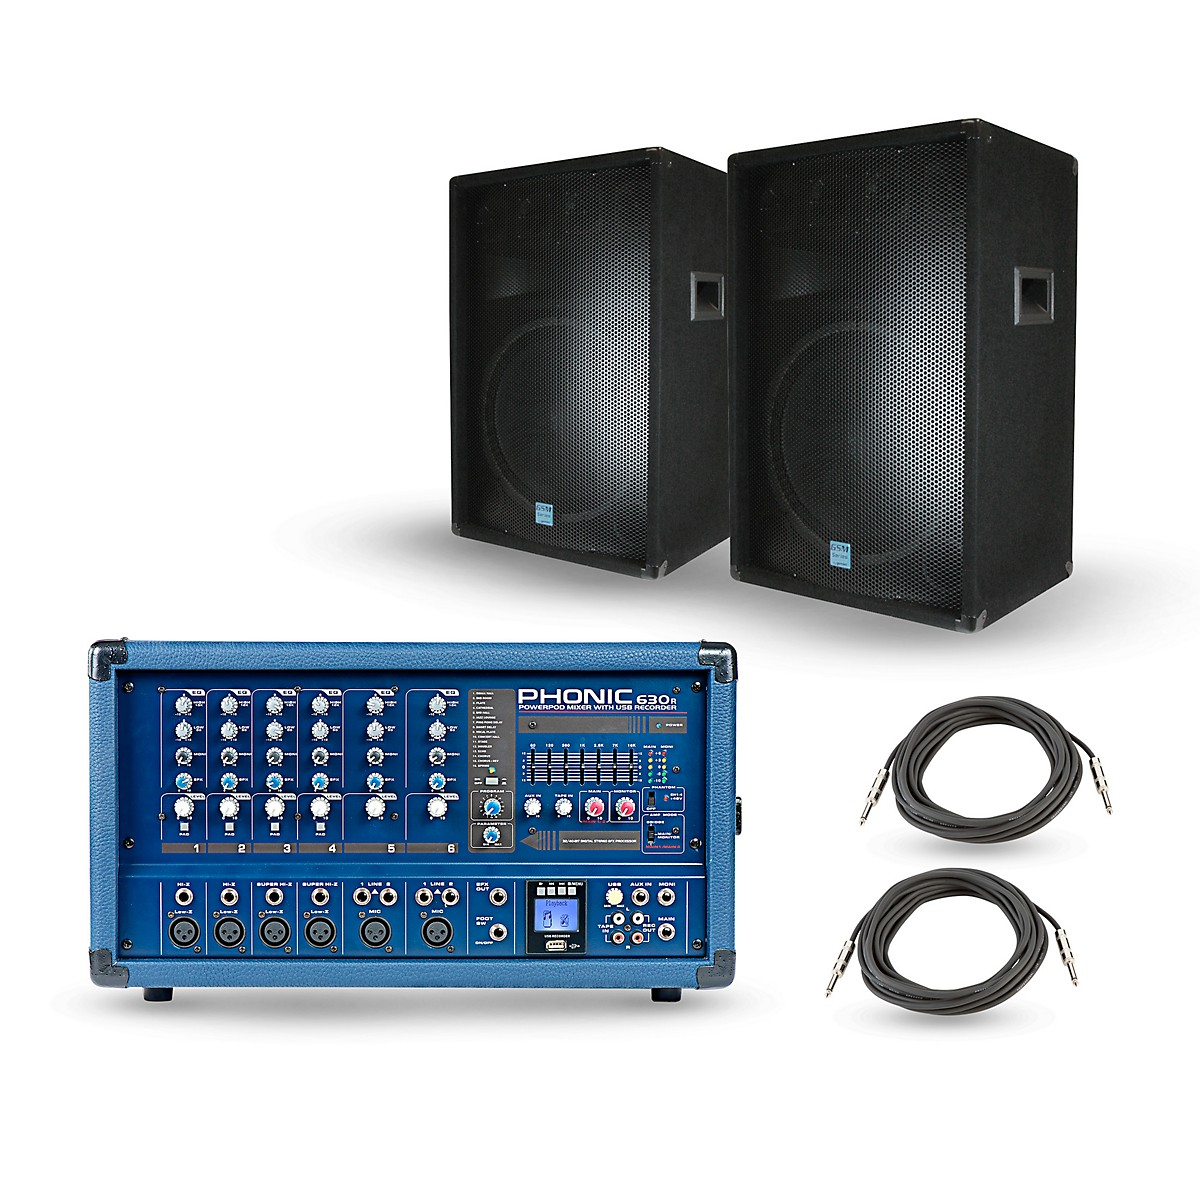 Phonic PA Package with Powerpod 630R Mixer and Gemini GSM Speakers